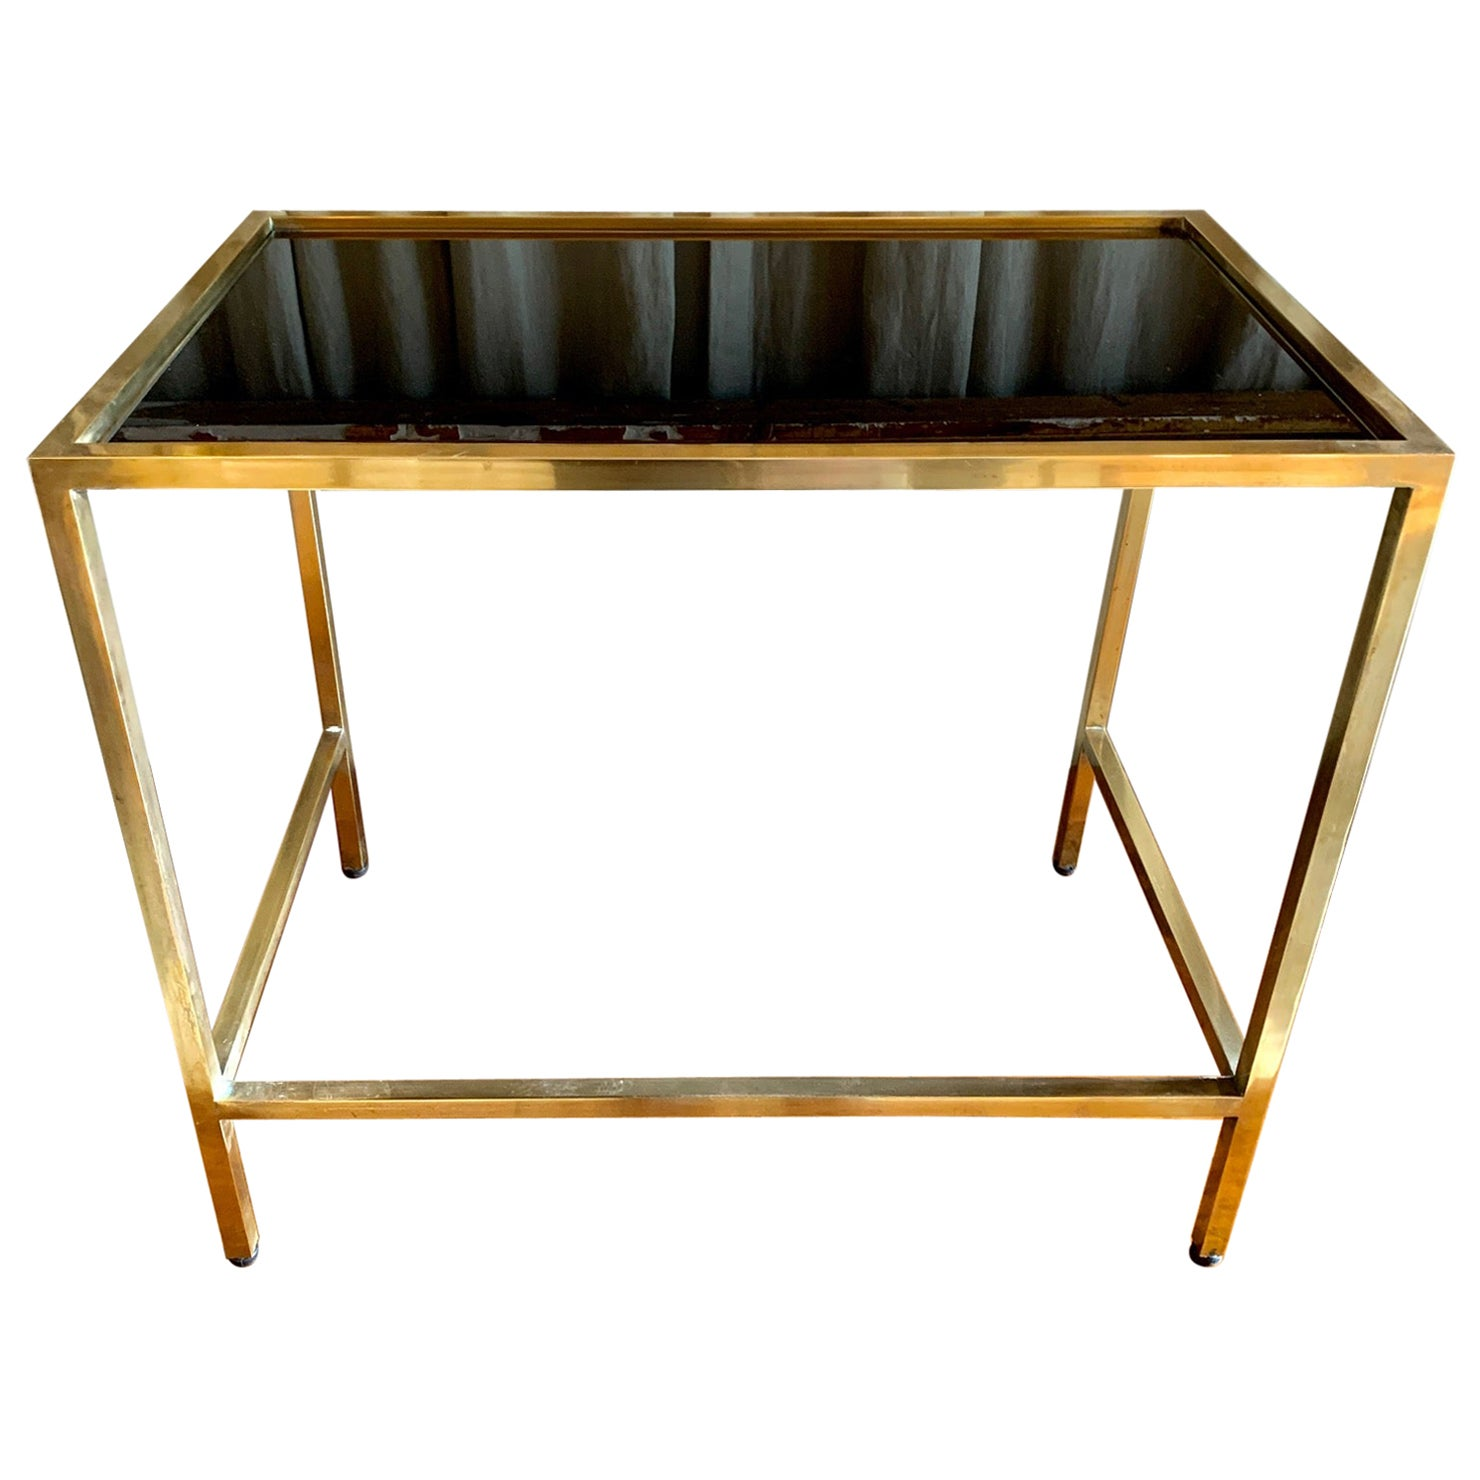 1970 Small Brass Coffee Table with Black Glass Top